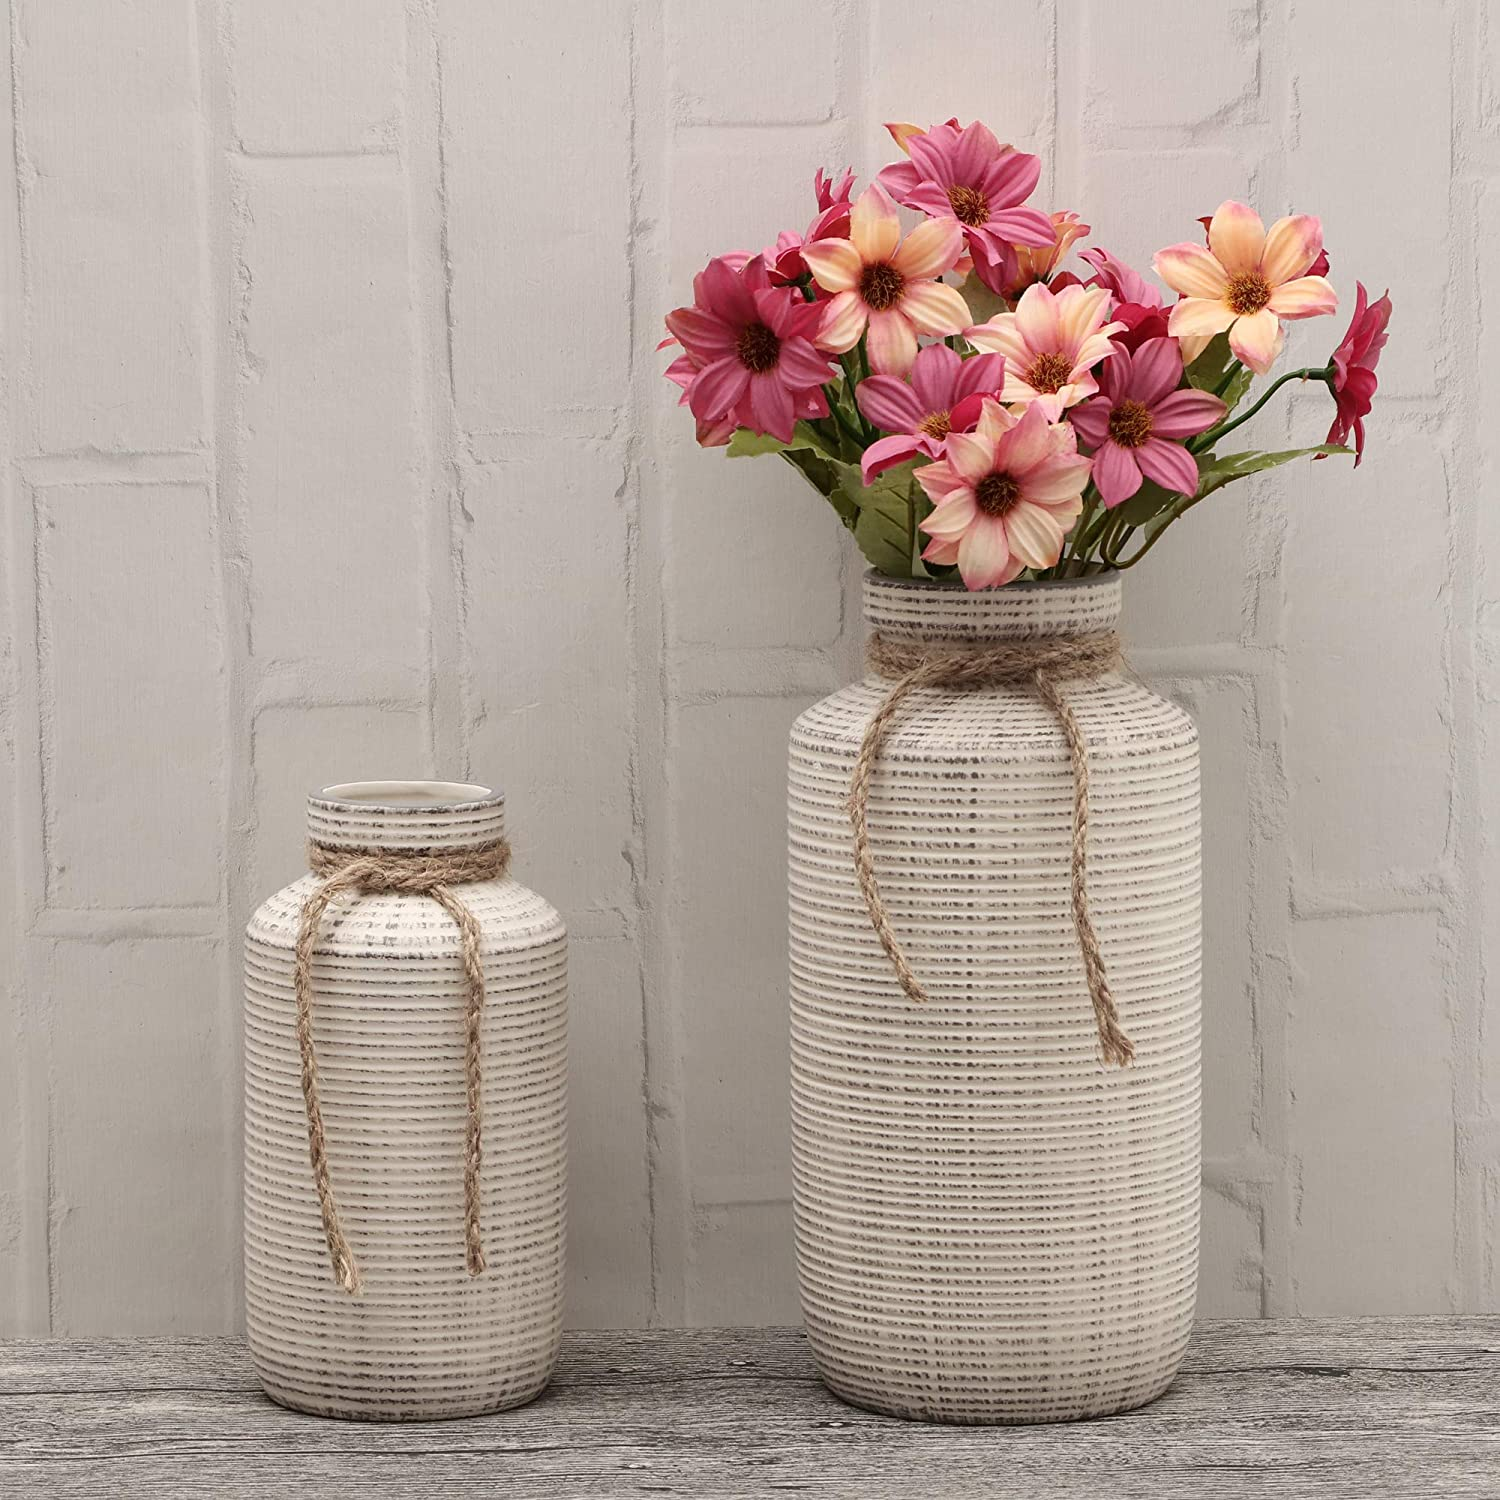 TERESA'S COLLECTIONS Ceramic Flower Vase, Set of 2 White Rustic Decorative Vase Set for Centerpieces,Kitchen,Office,Wedding or Living Room